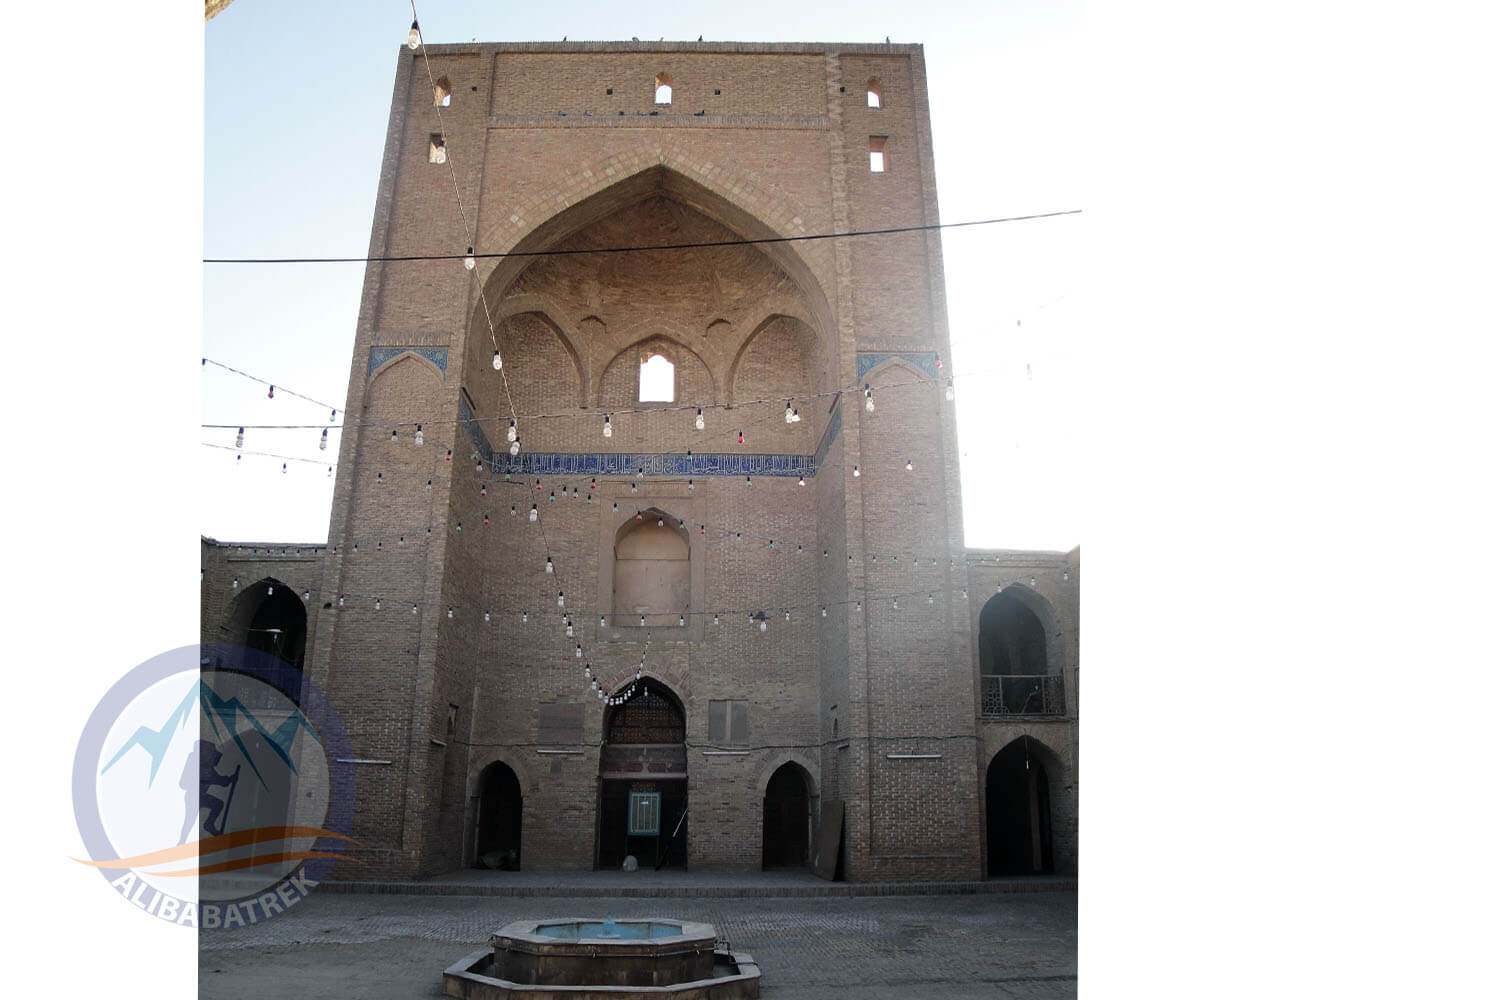 Alibabatrek iran tour packages semnan travel semnan tour visit semnan iran abr forest semnan city semnan tourism semnan tourist attraction semnan sightseeing places to see in semnan Jameh Mosque